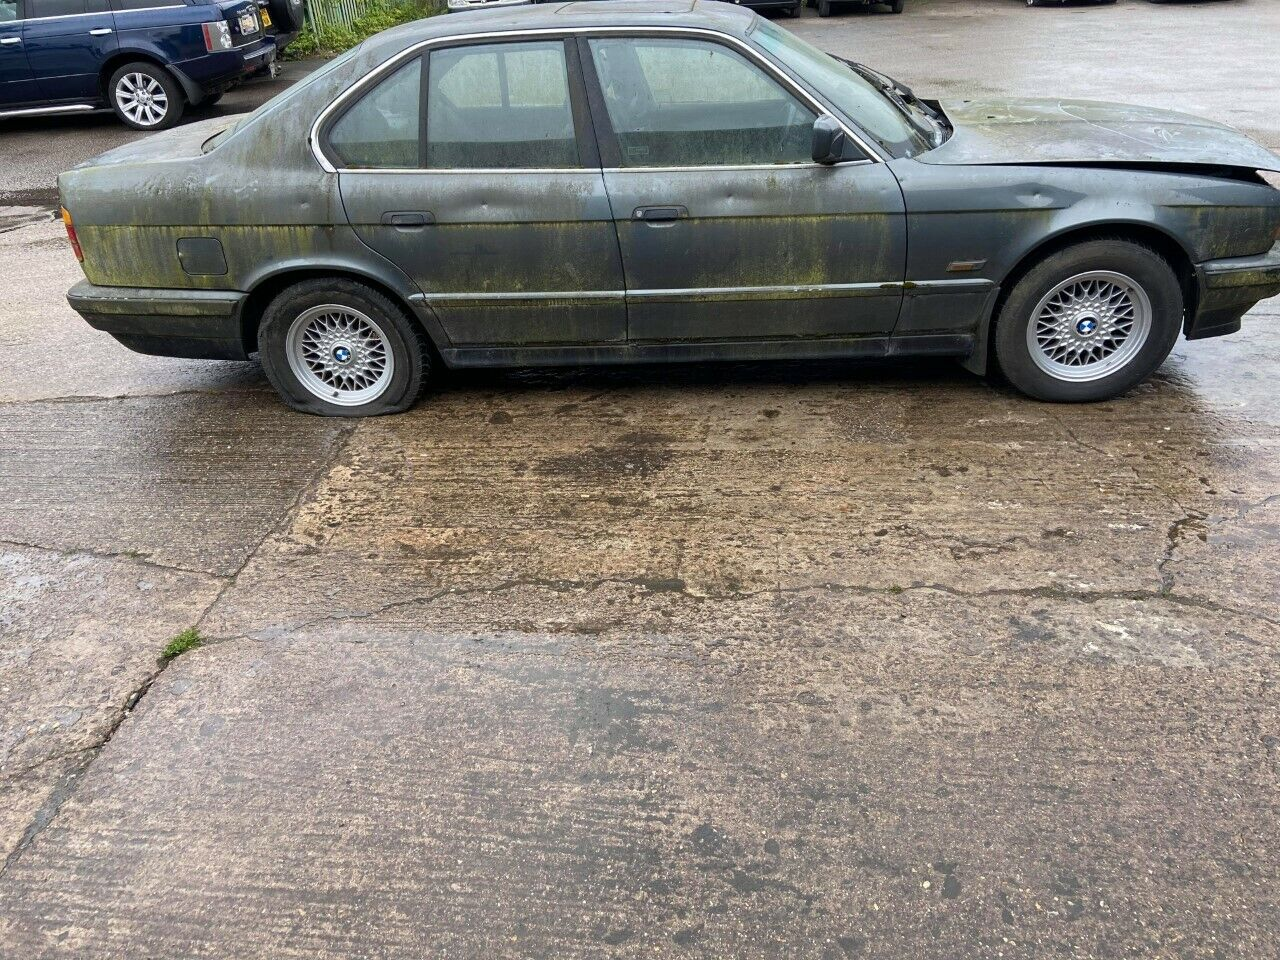 BMW-530i-1989-CLASSIC-CAR-RARE-BARN-FIND-E30-E34